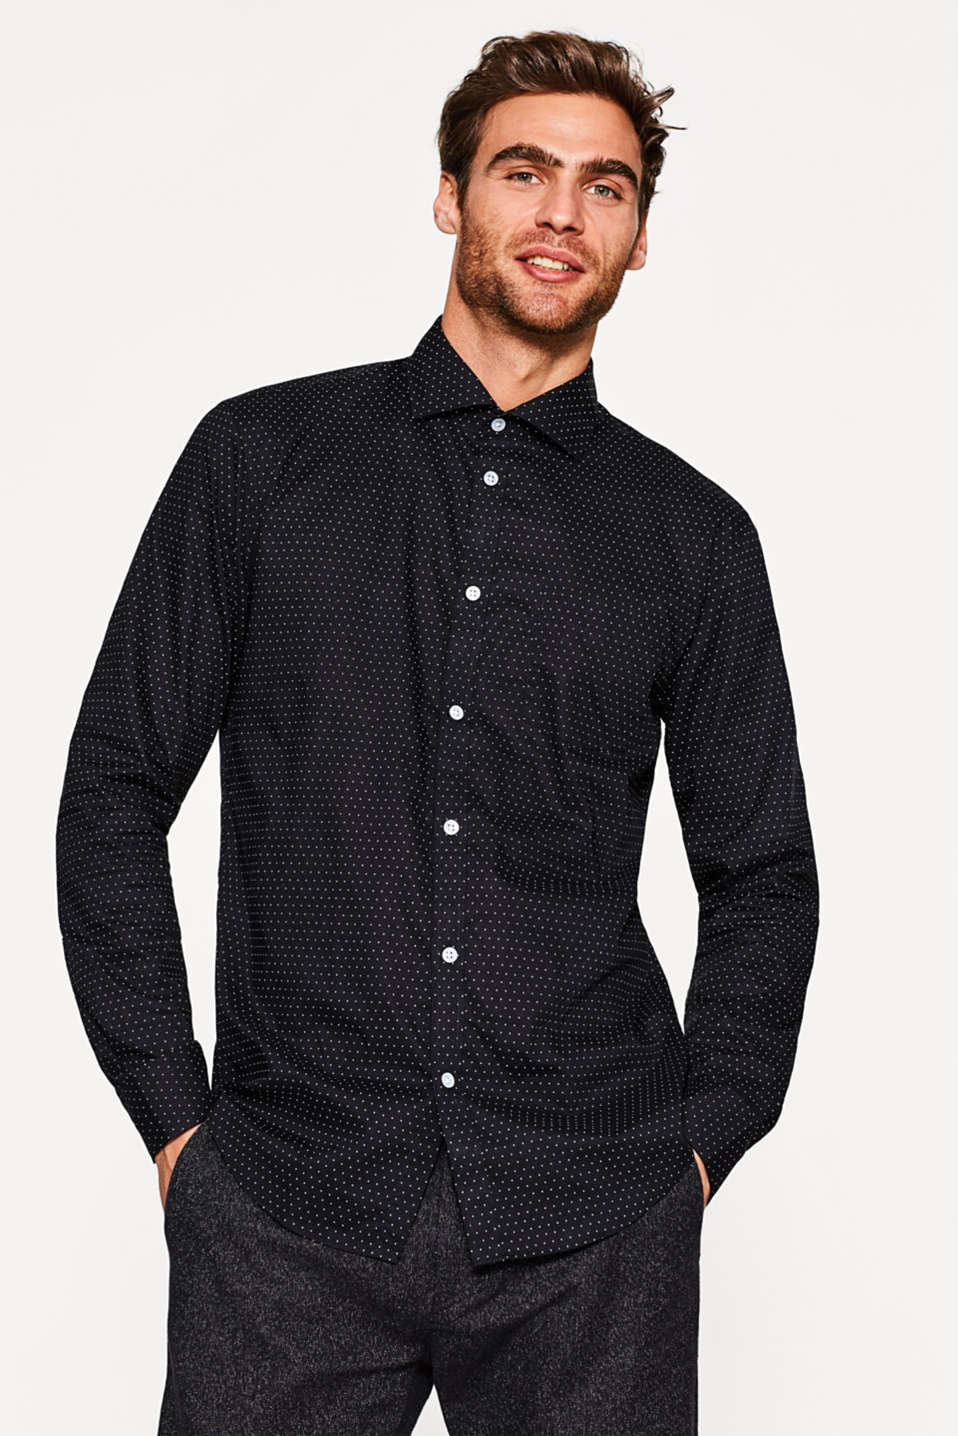 Esprit - Polka dot print shirt, 100% cotton